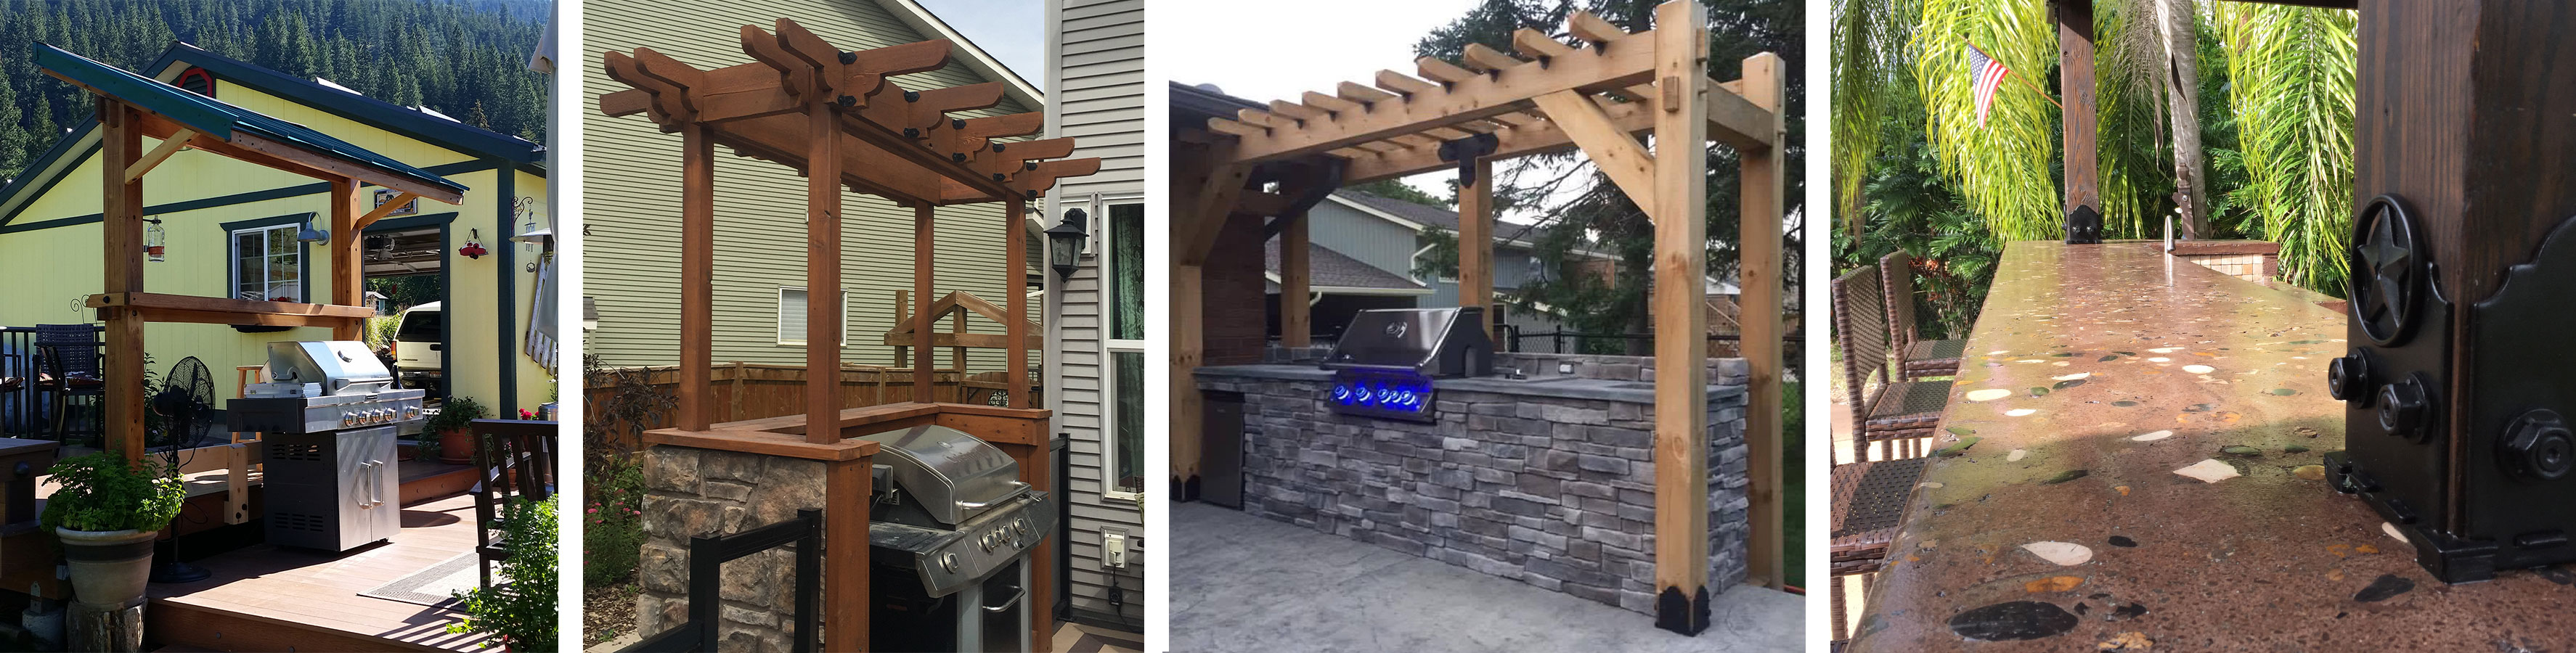 Grill Stands Barbecue Shelters And Outdoor Kitchens Let S Bbq